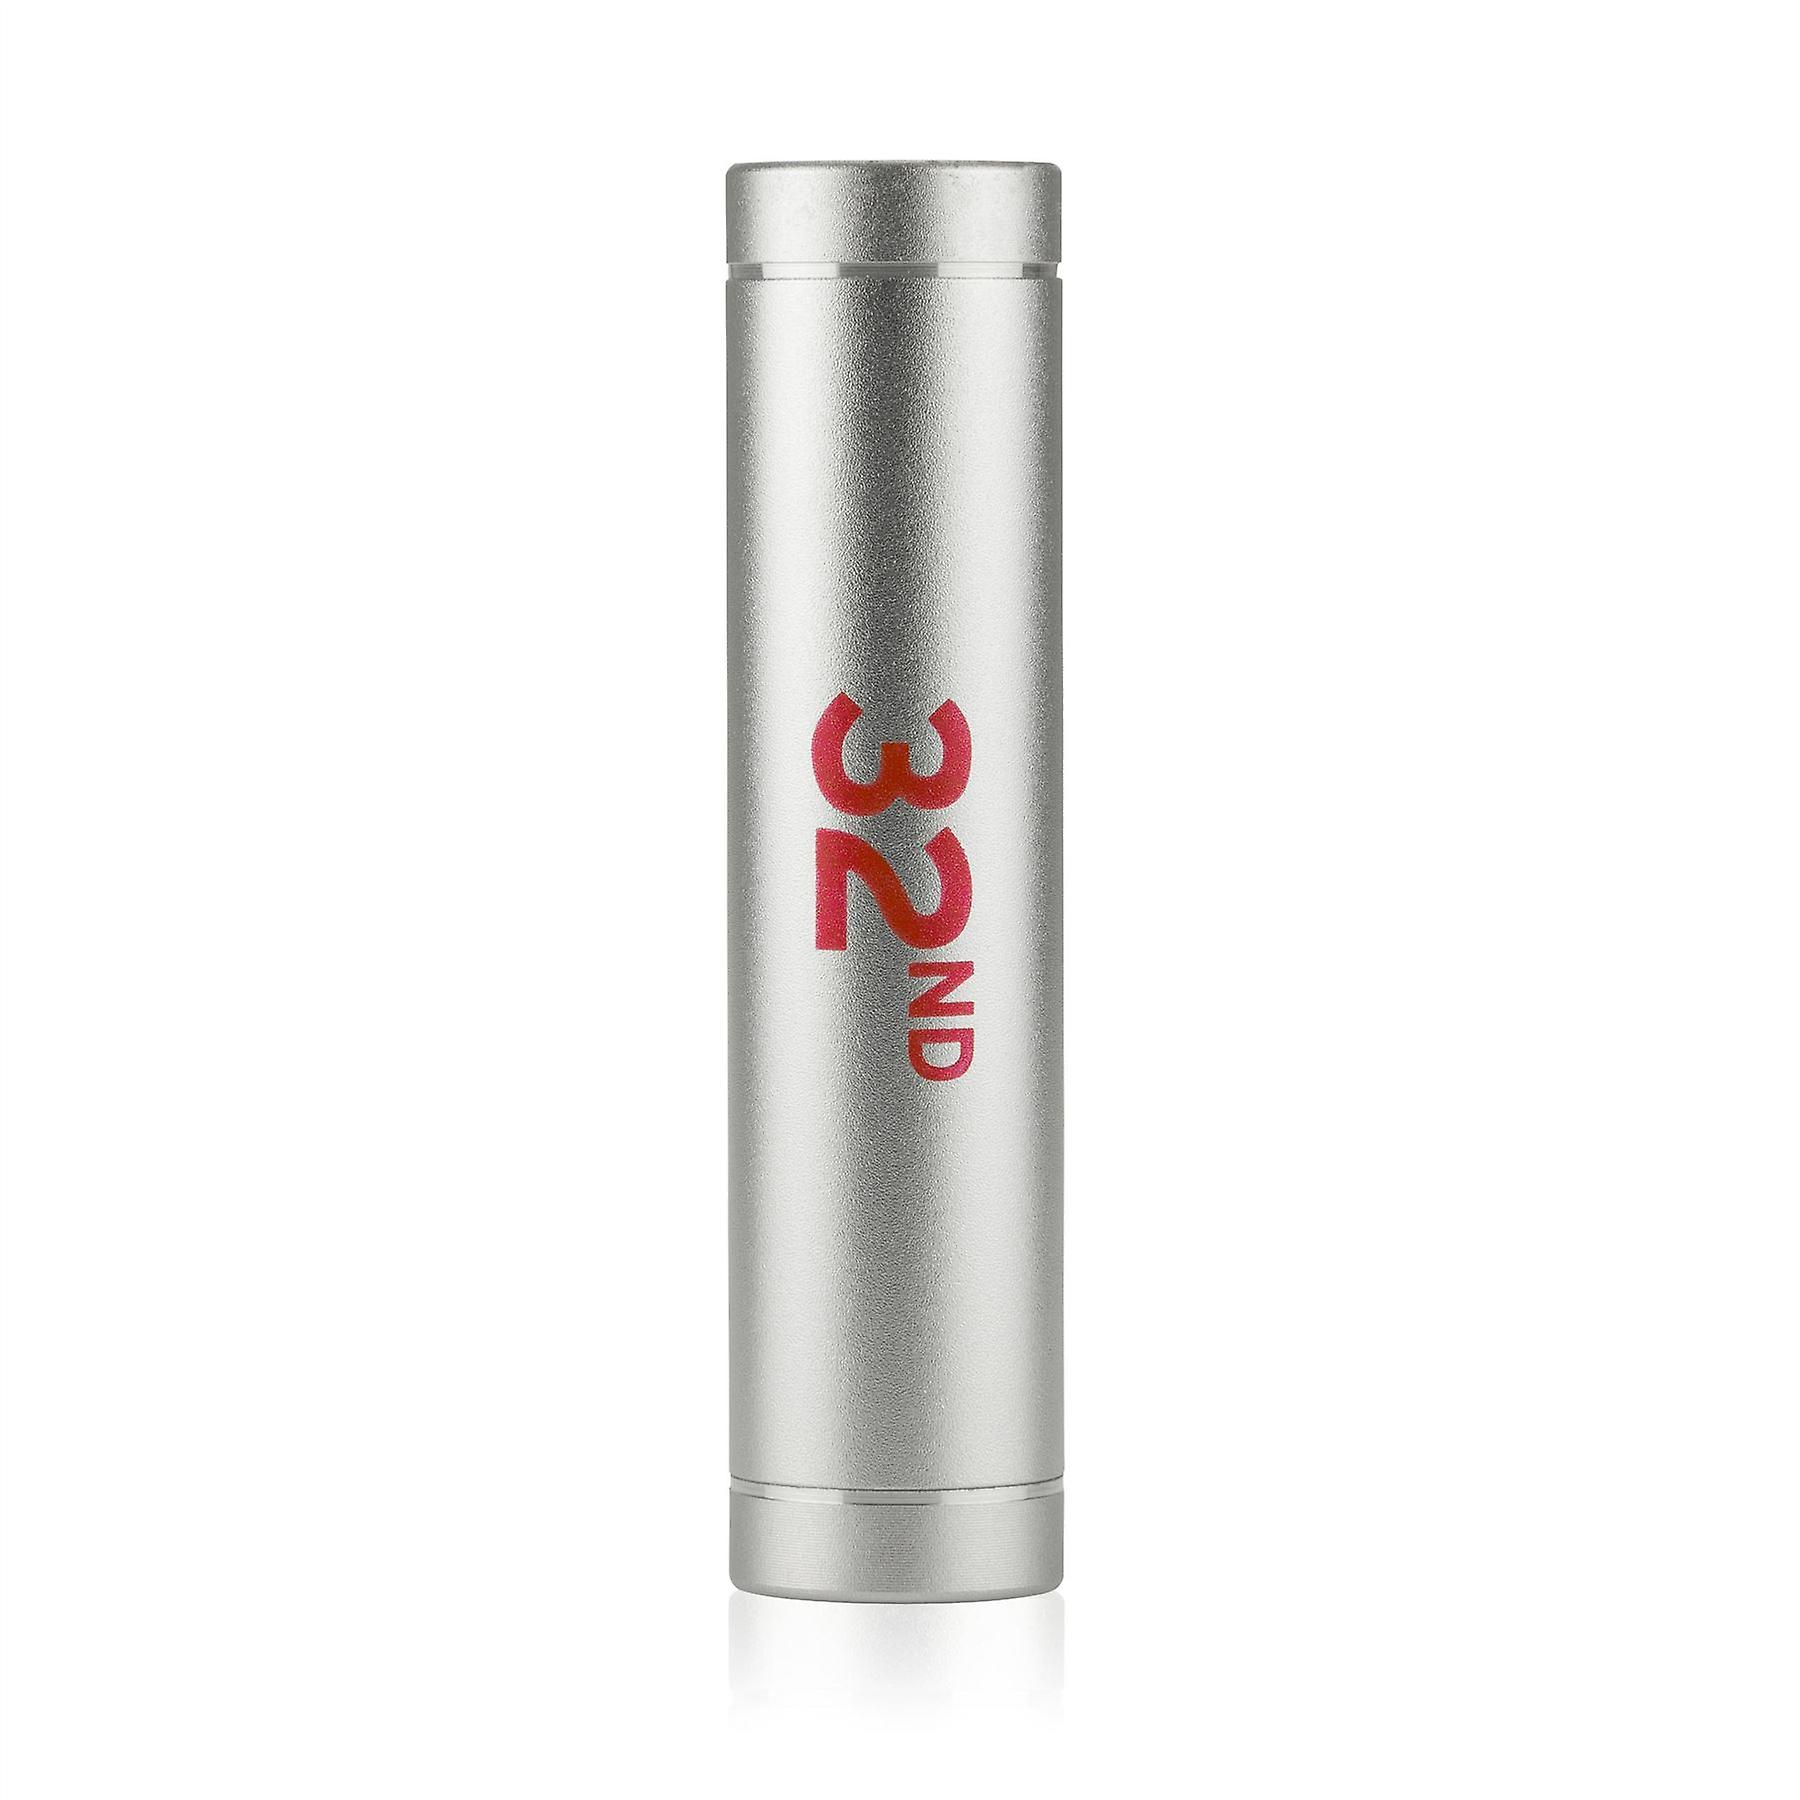 32nd branded Power Bank Portable Battery Pack 2200 mah - Silver